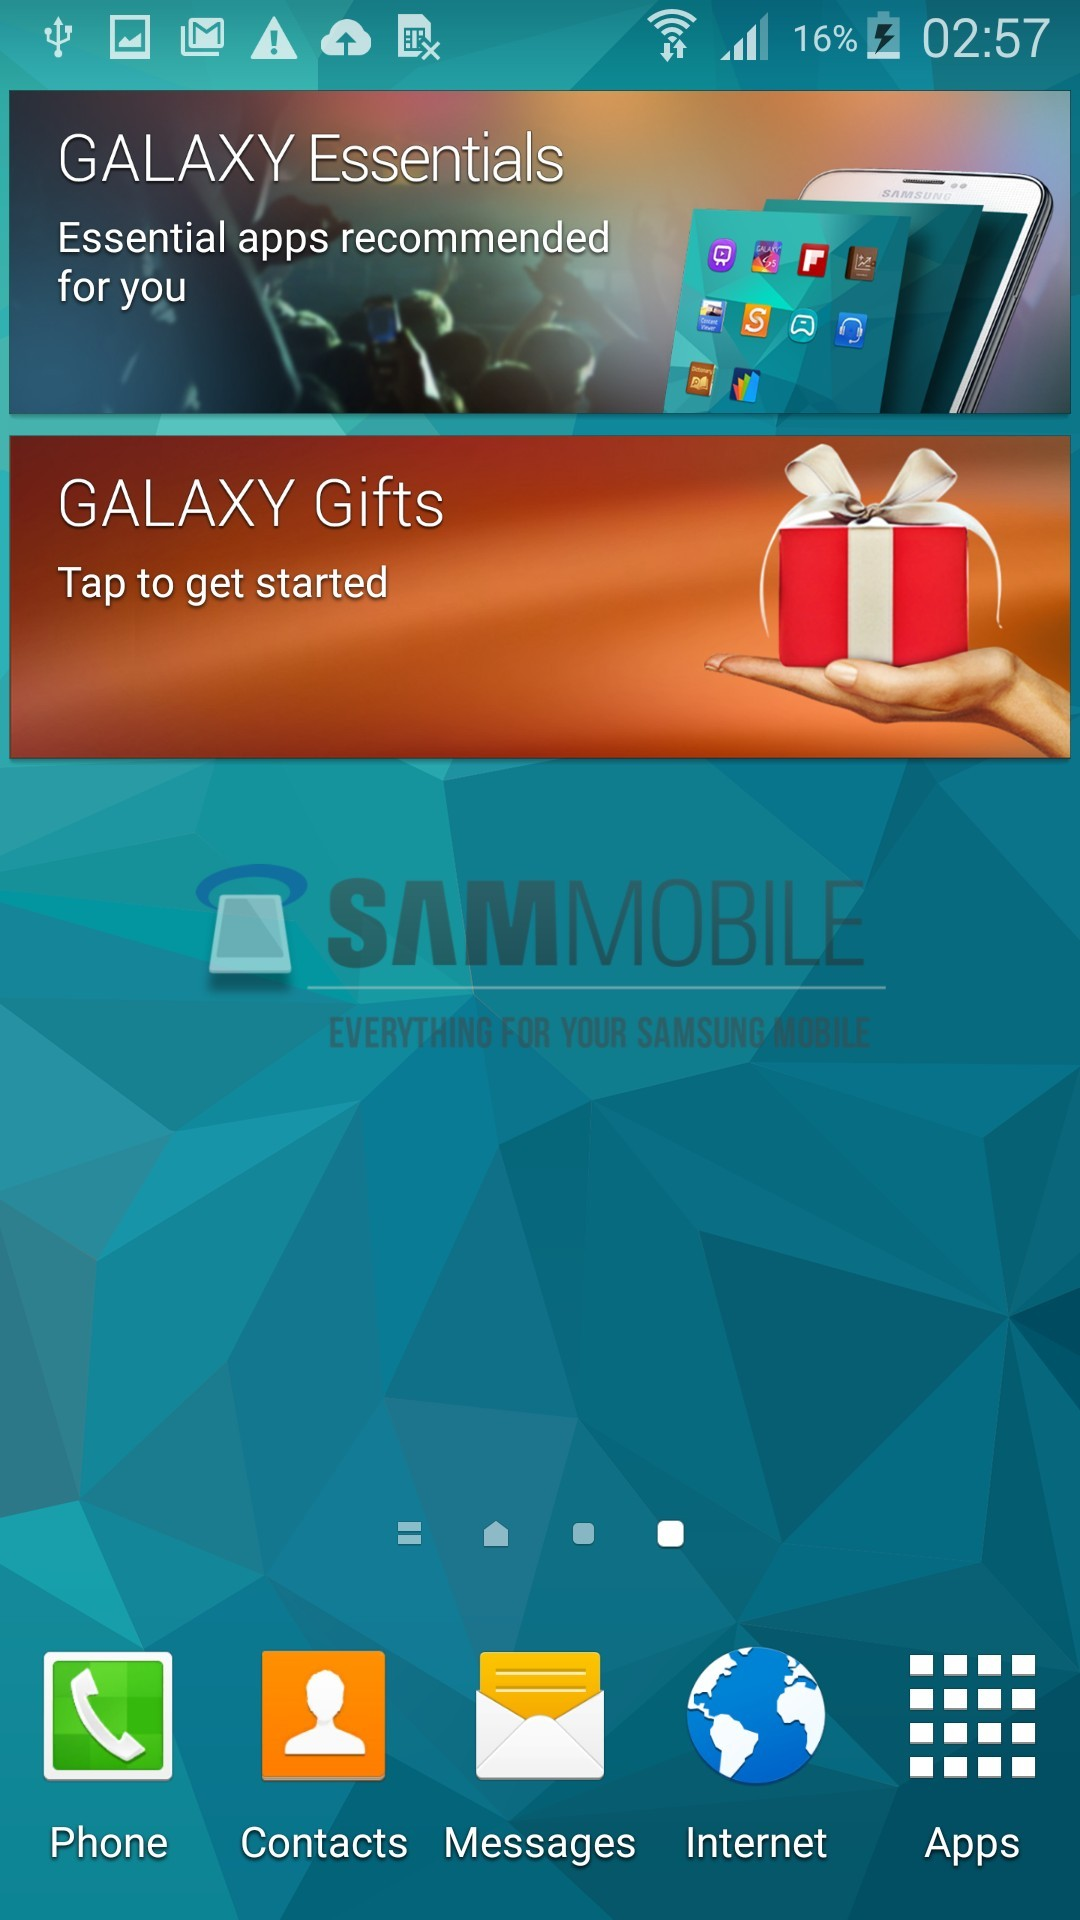 Samsung Galaxy S5 Now Receiving Android 5 0 Lollipop Update